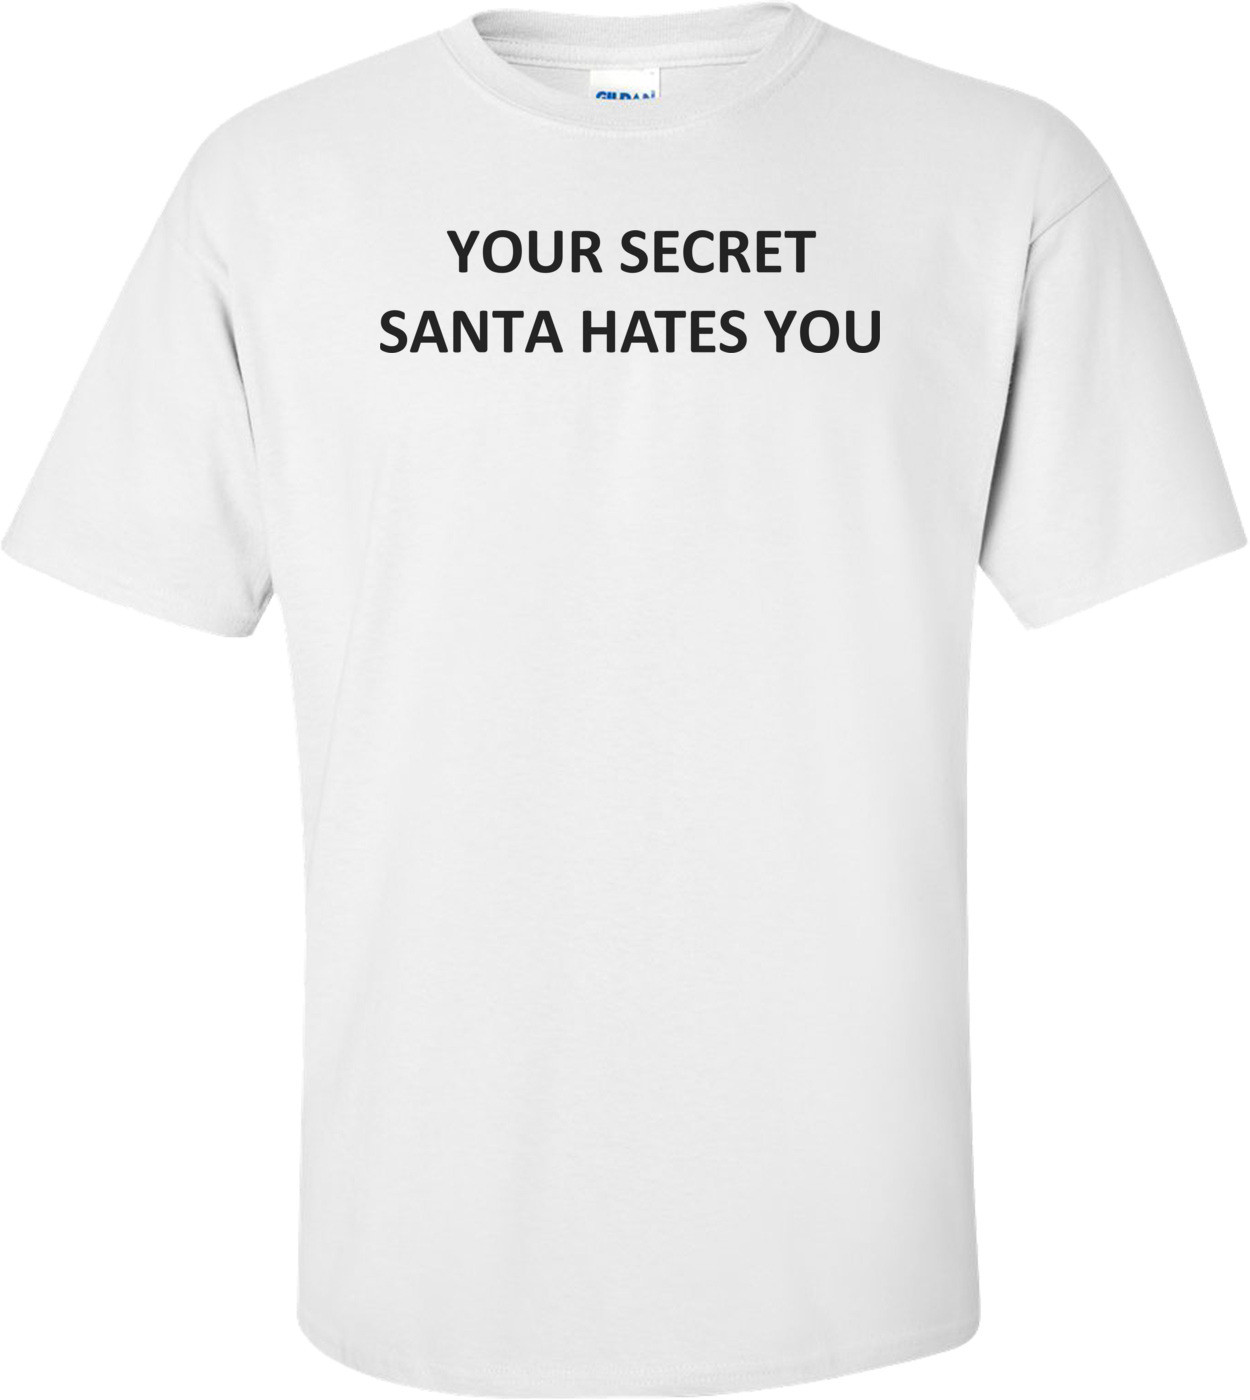 YOUR SECRET SANTA HATES YOU Shirt